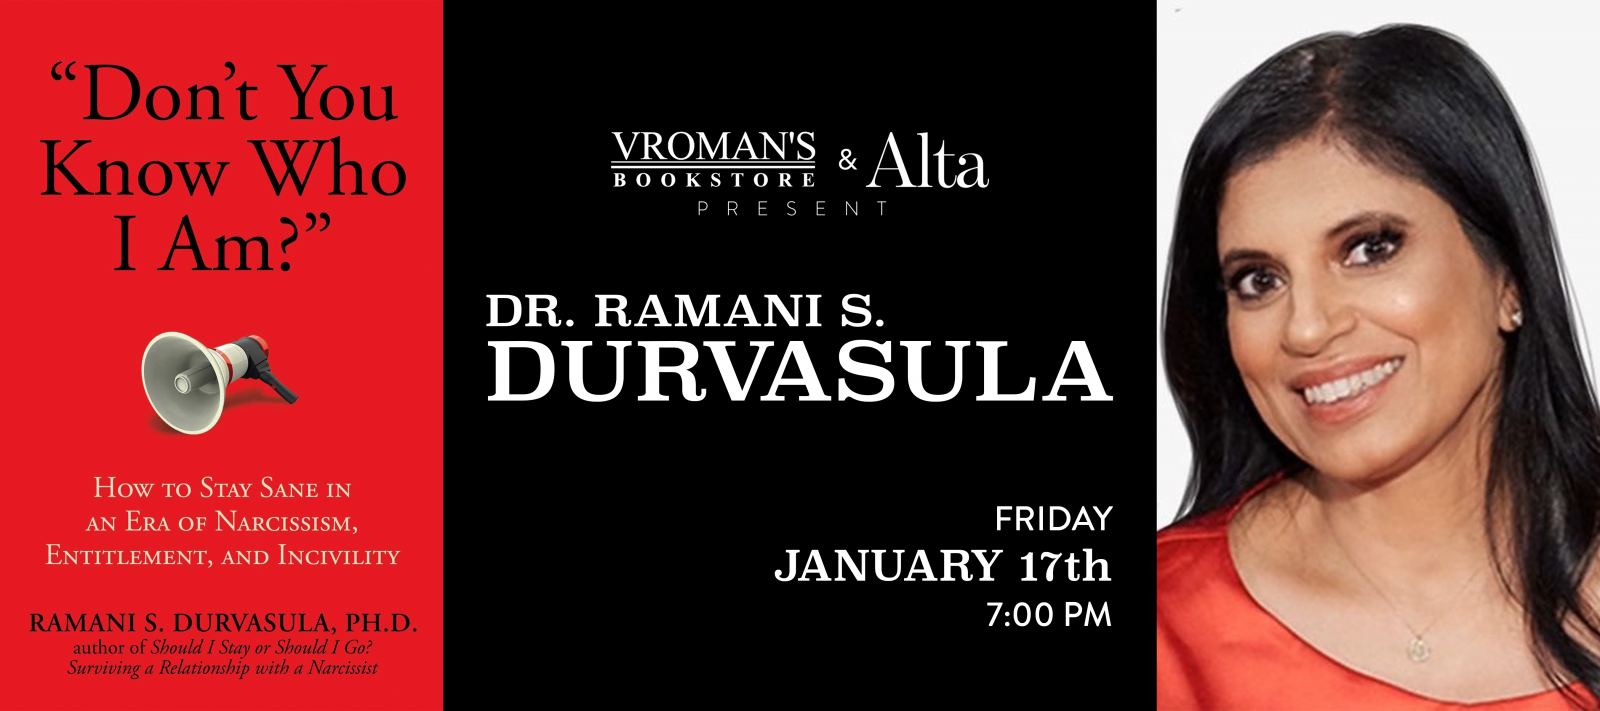 Dr. Ramani Durvasula discusses and signs Don't You Know Who I Am on Friday January 17th at 7pm